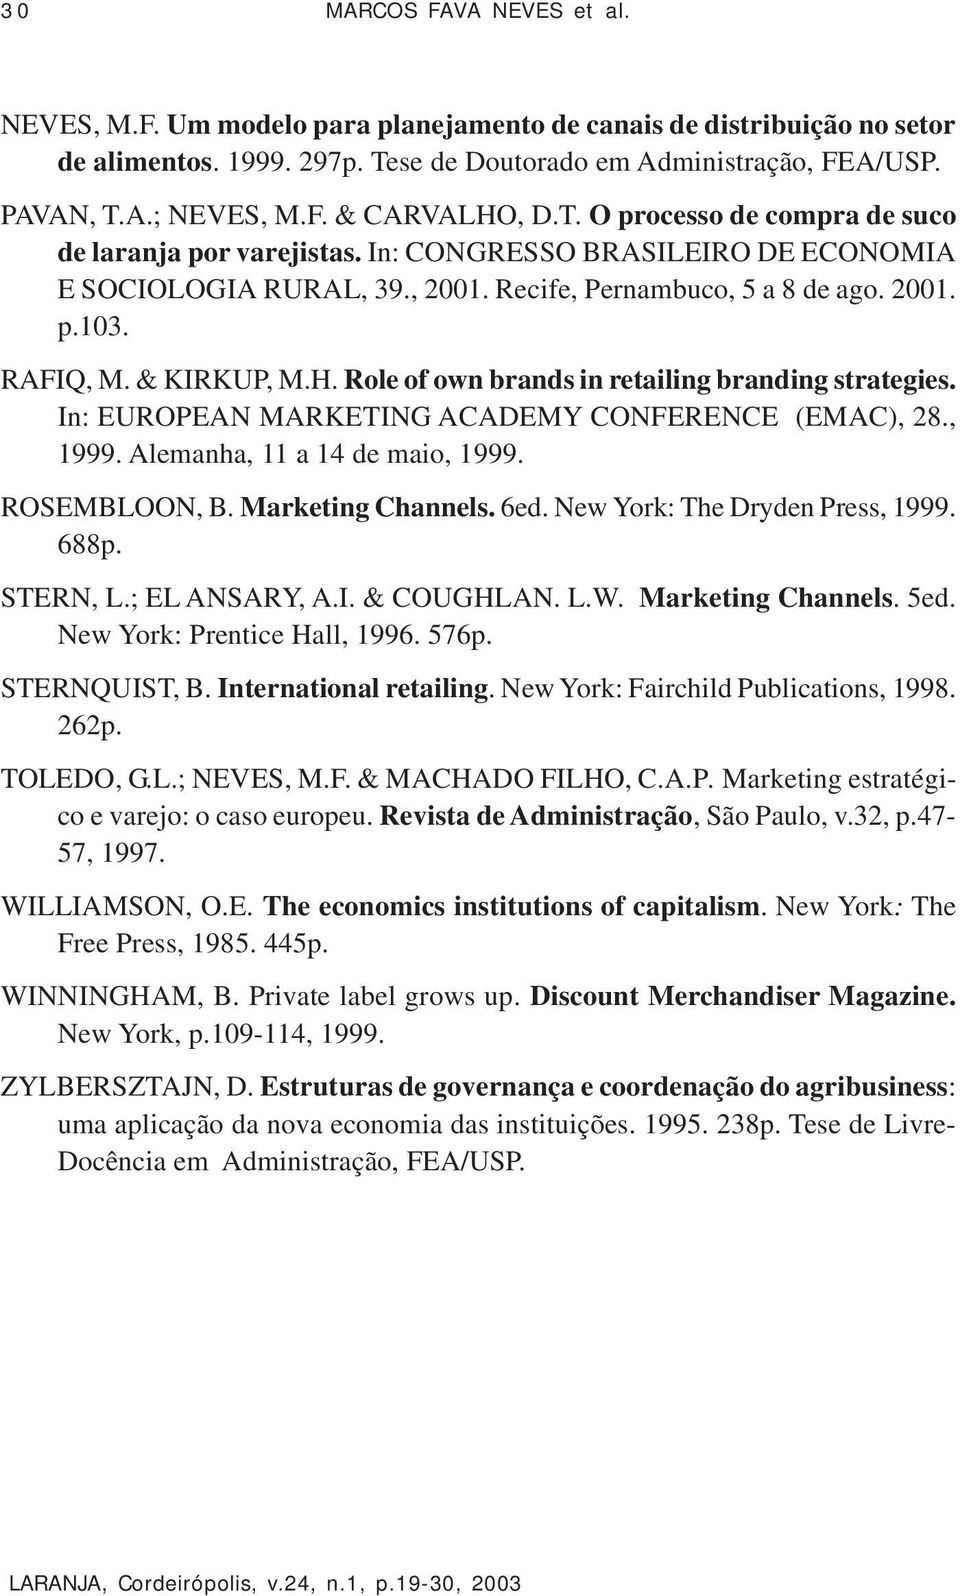 Role of own brands in retailing branding strategies. In: EUROPEAN MARKETING ACADEMY CONFERENCE (EMAC), 28., 1999. Alemanha, 11 a 14 de maio, 1999. ROSEMBLOON, B. Marketing Channels. 6ed.